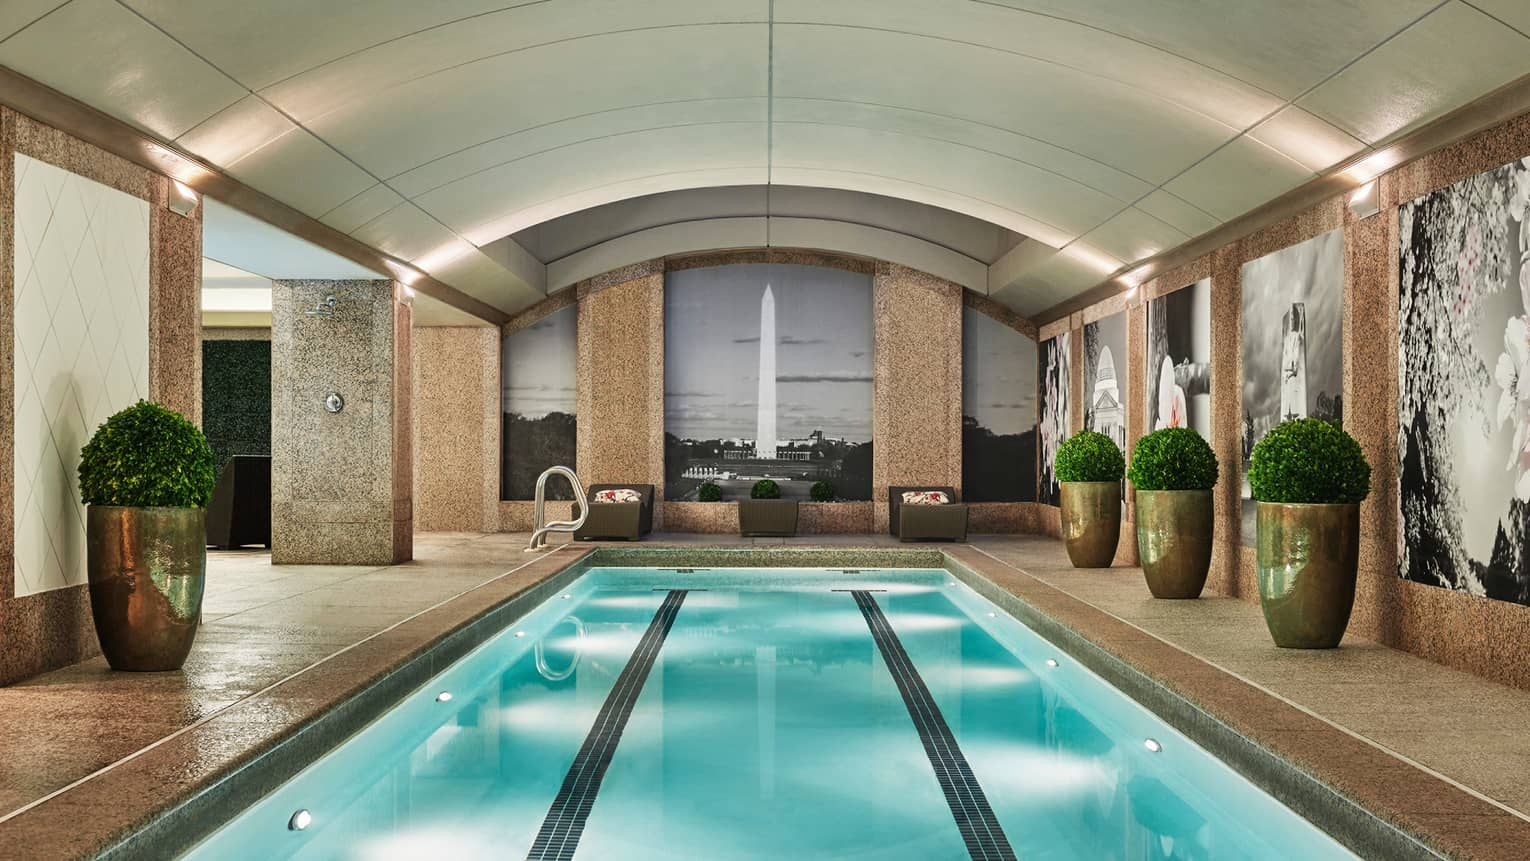 Long indoor lap swimming pool, large gold planters on deck, wall with black-and-white mural of the Washington Monument